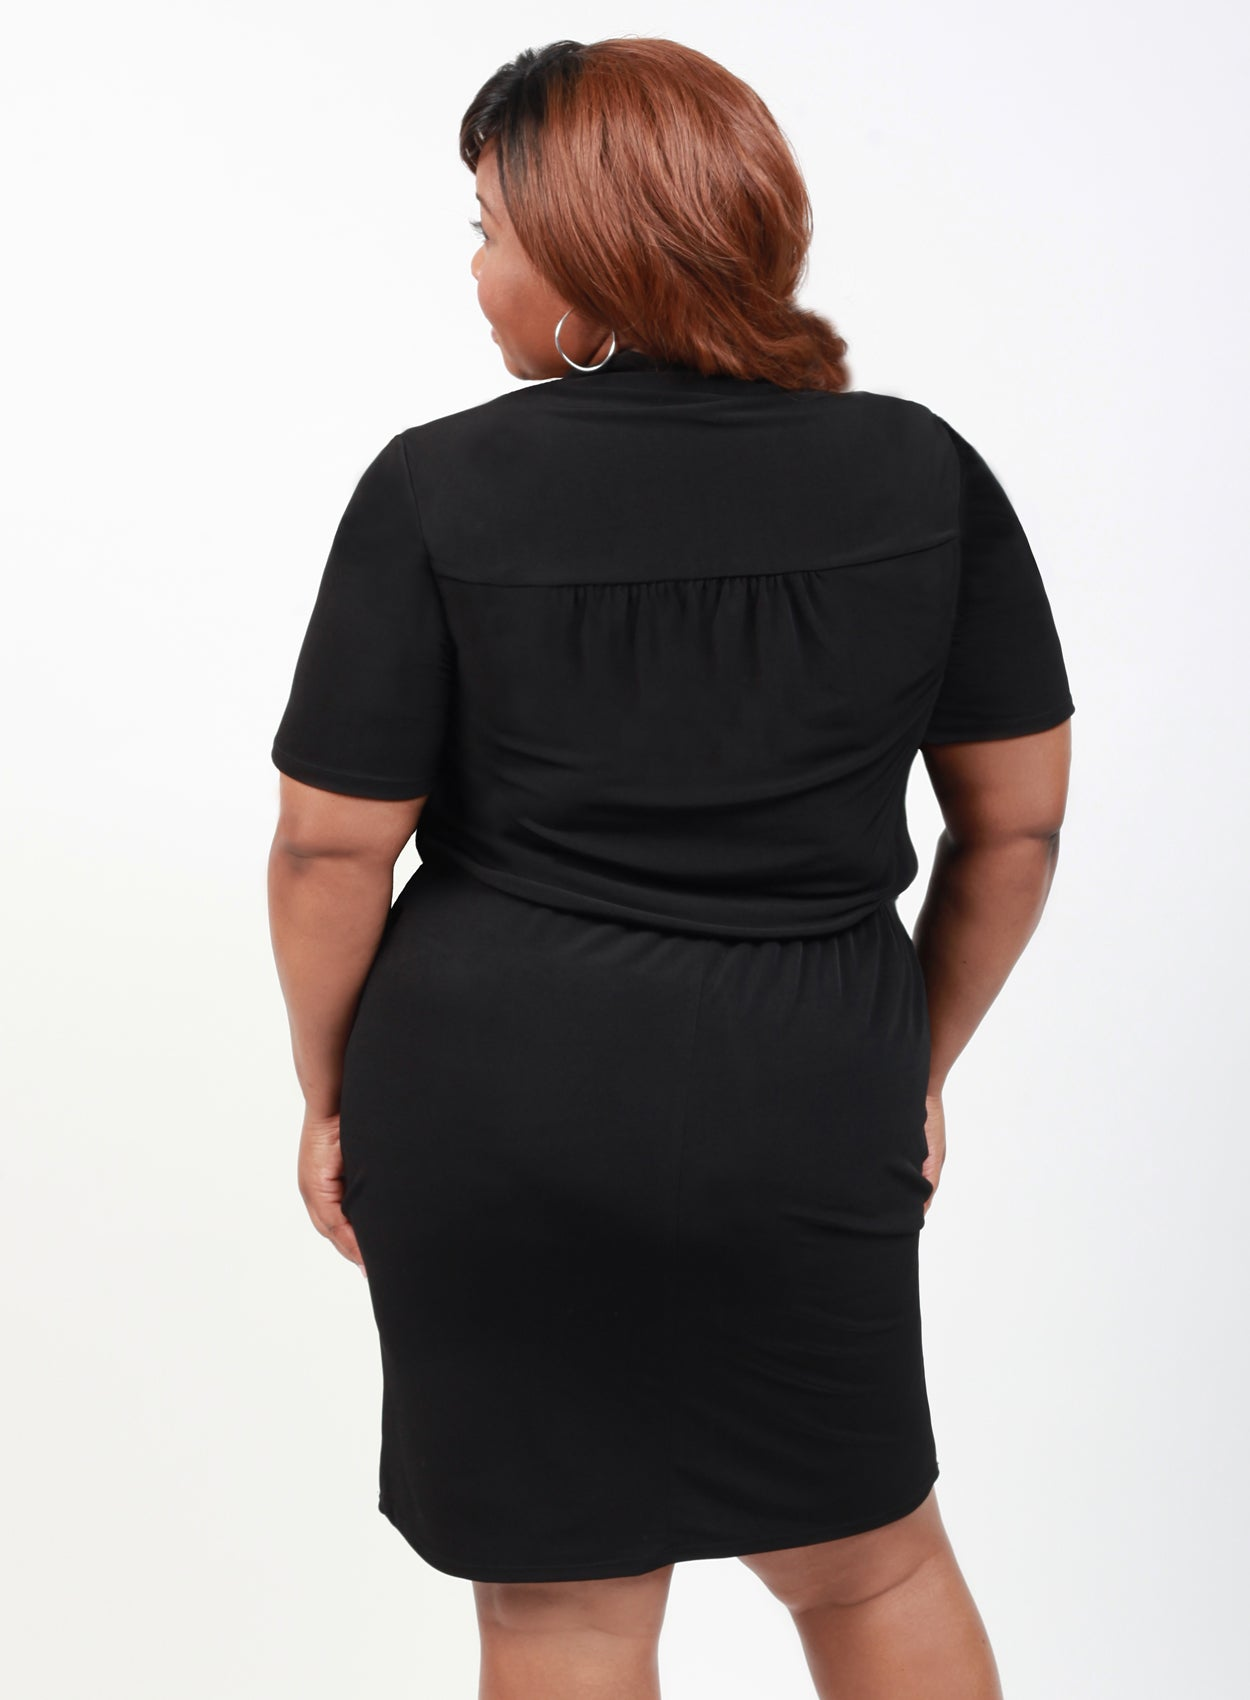 CURVY BLACK PLUS SIZE BUTTON FRONT SHIRT DRESS WITH SLEEVES AND DRAWSTRING